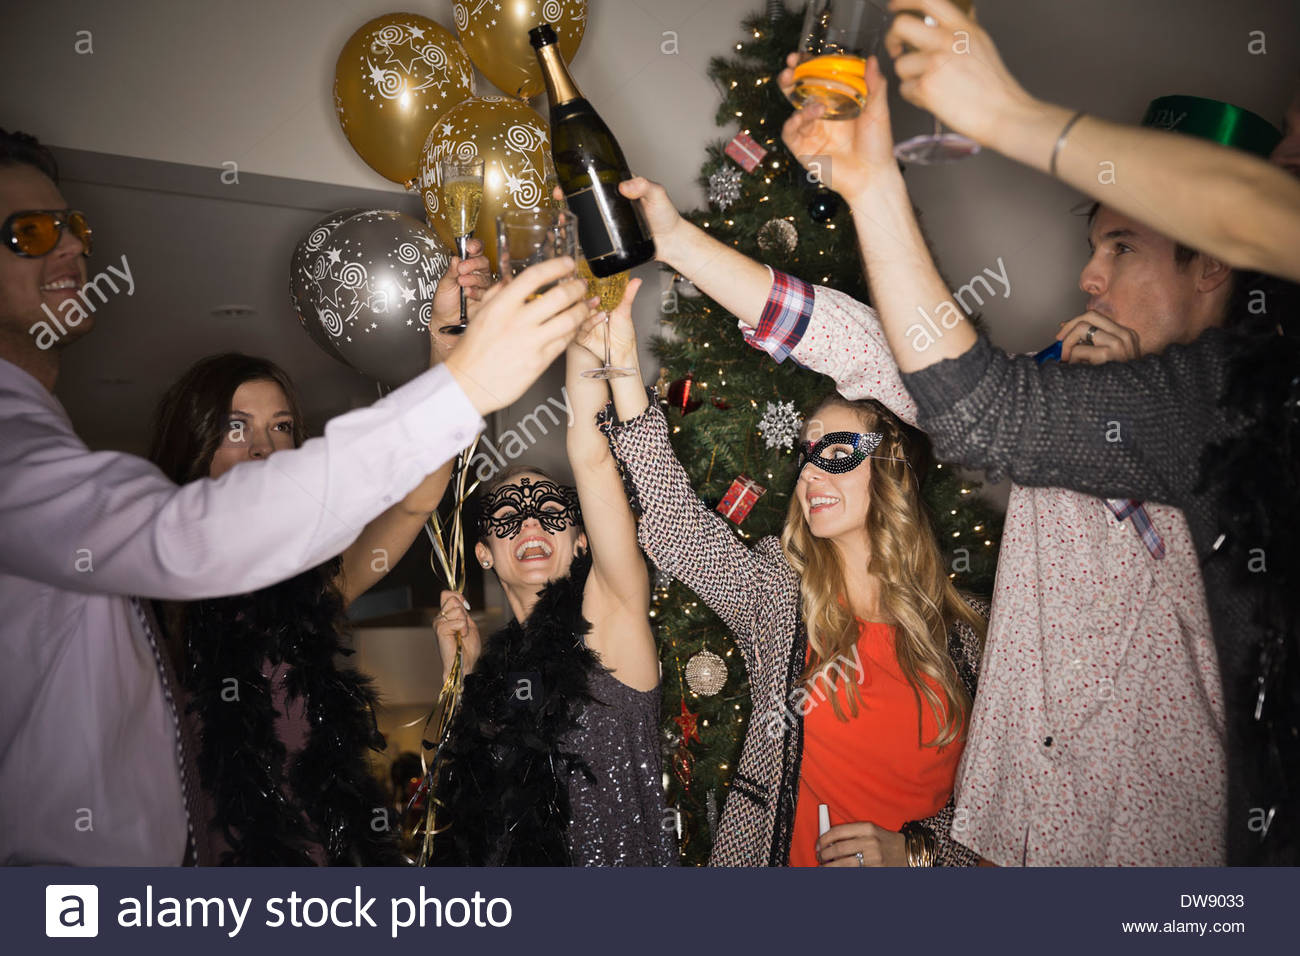 Friends celebrating New Years Eve party at home - Stock Image